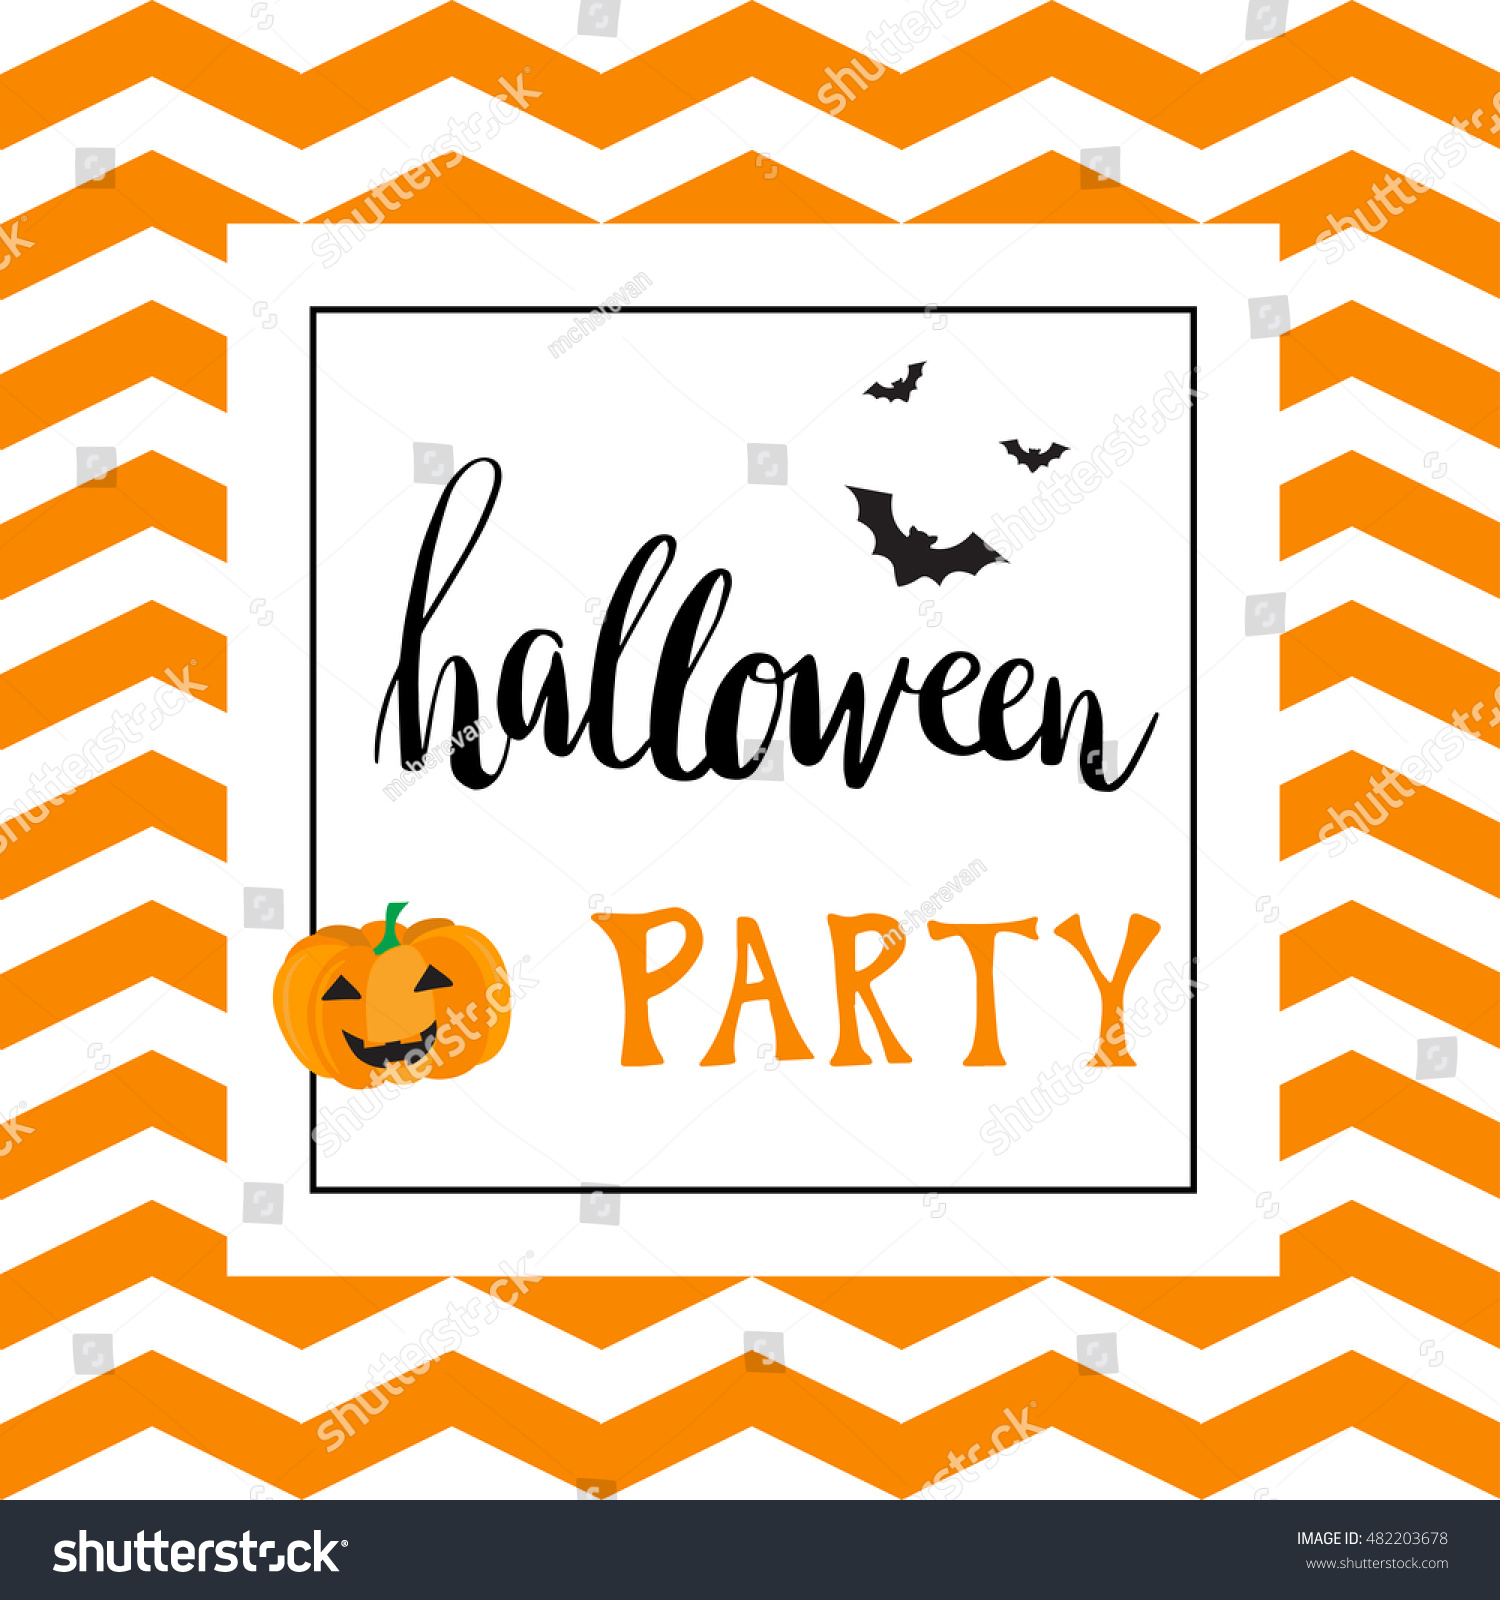 Vintage Halloween Party Invitation Card Template Stock Vector ...